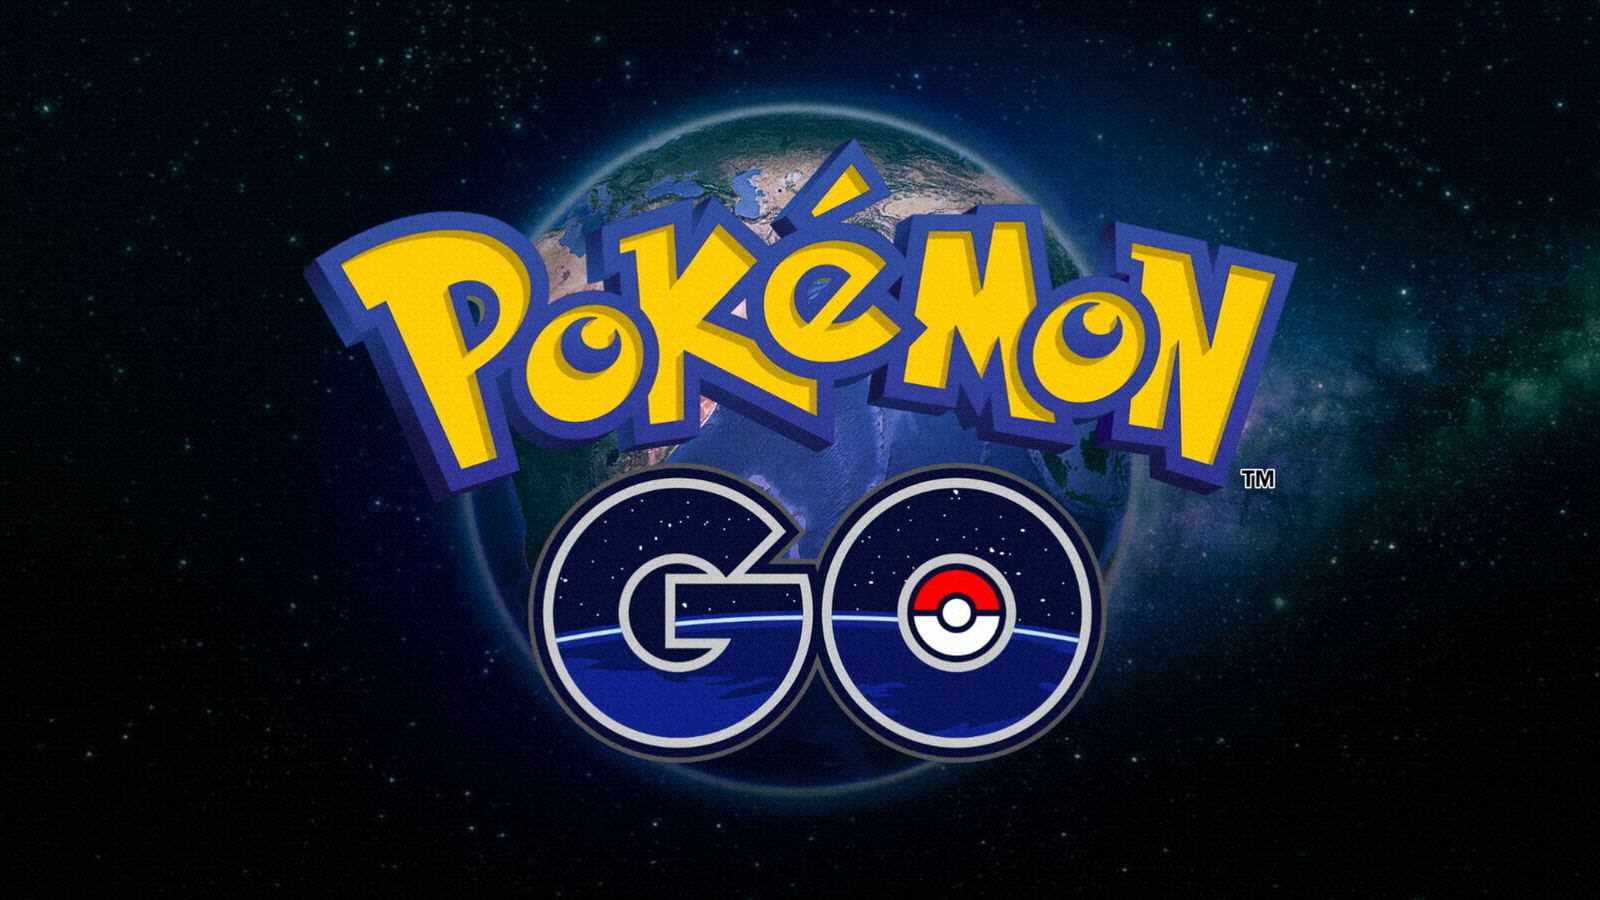 pokemon go logo Pokemon GO Devs Working To Bring Back Key Feature, With Big Changes